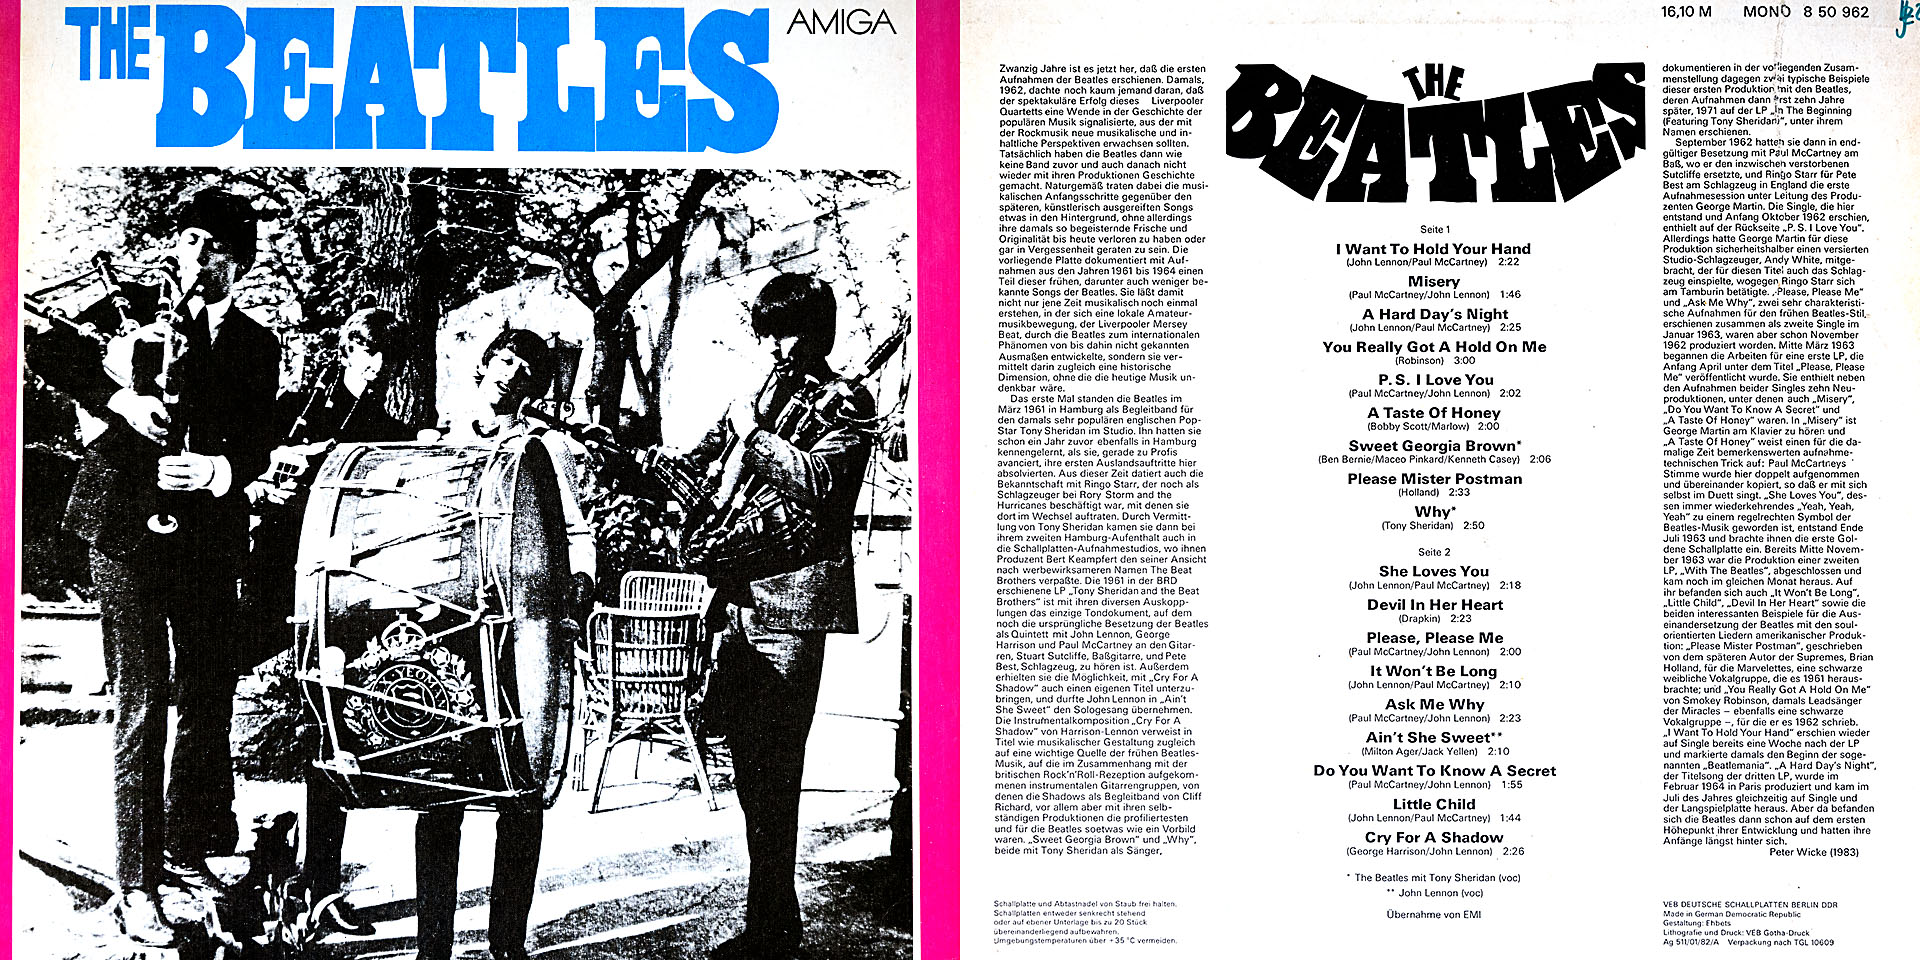 The Beatles - The Beatles